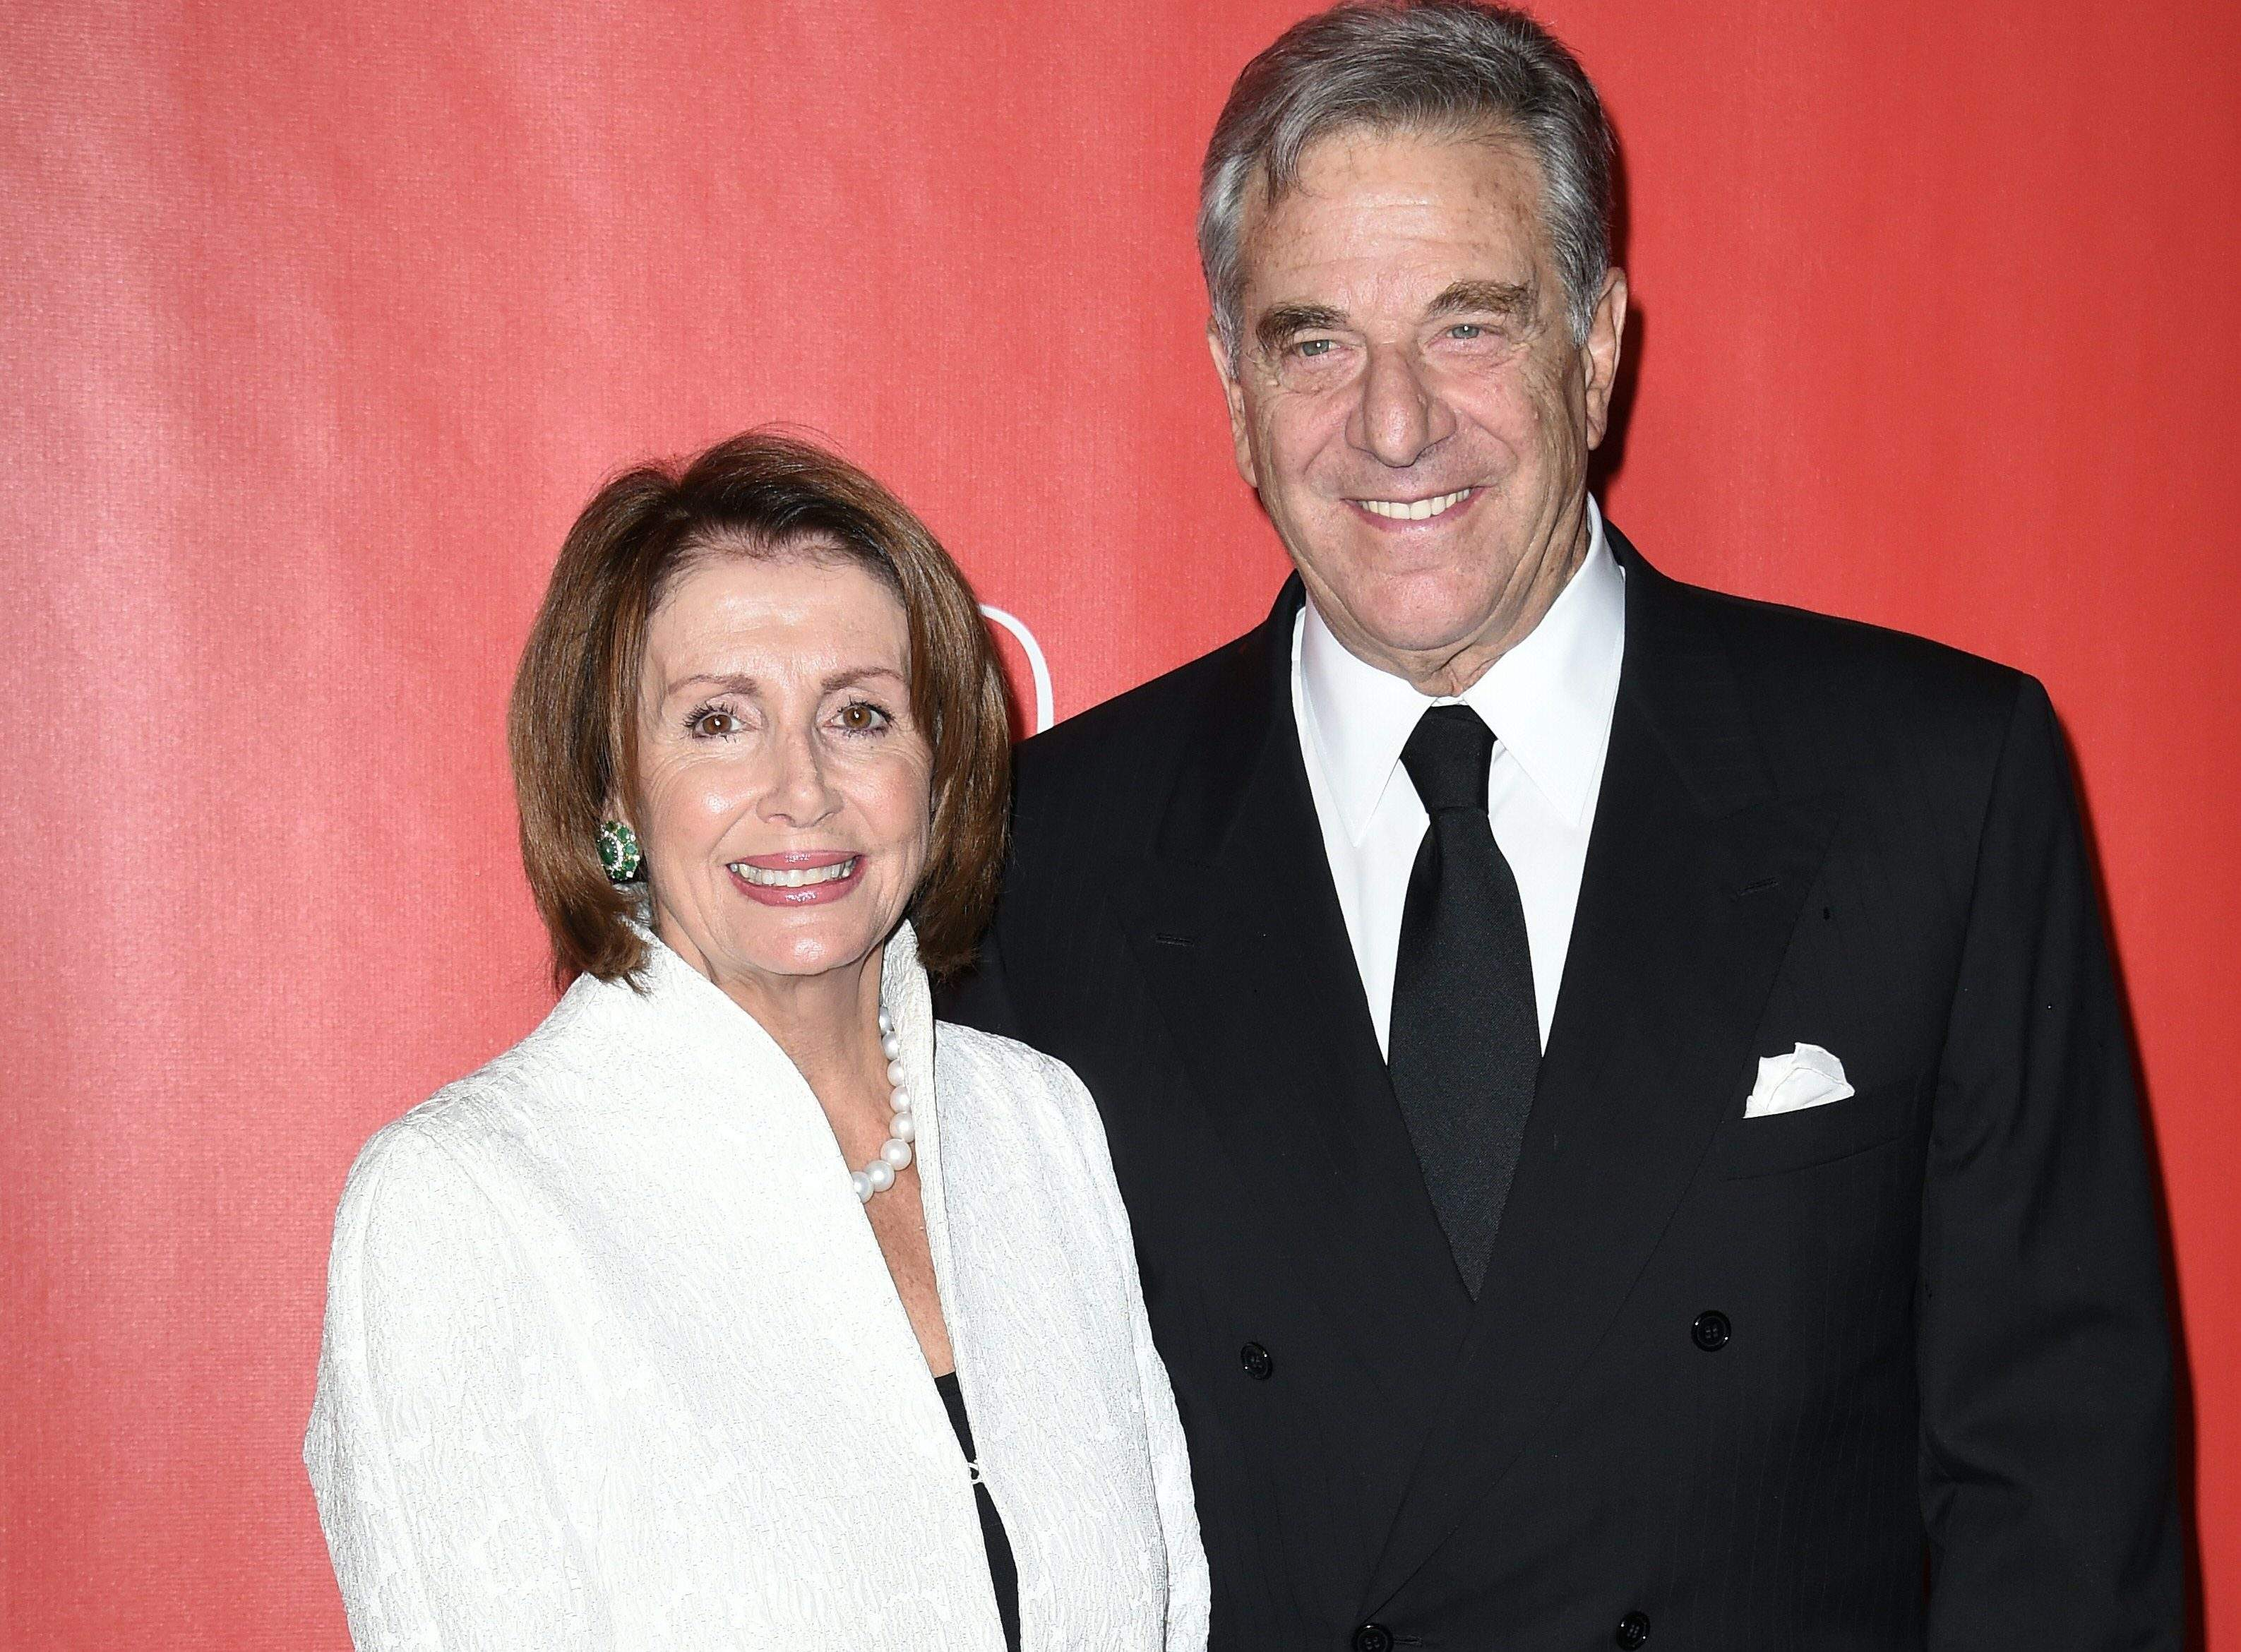 Paul Pelosi Wiki: Everything To Know About Nancy Pelosi's Husband